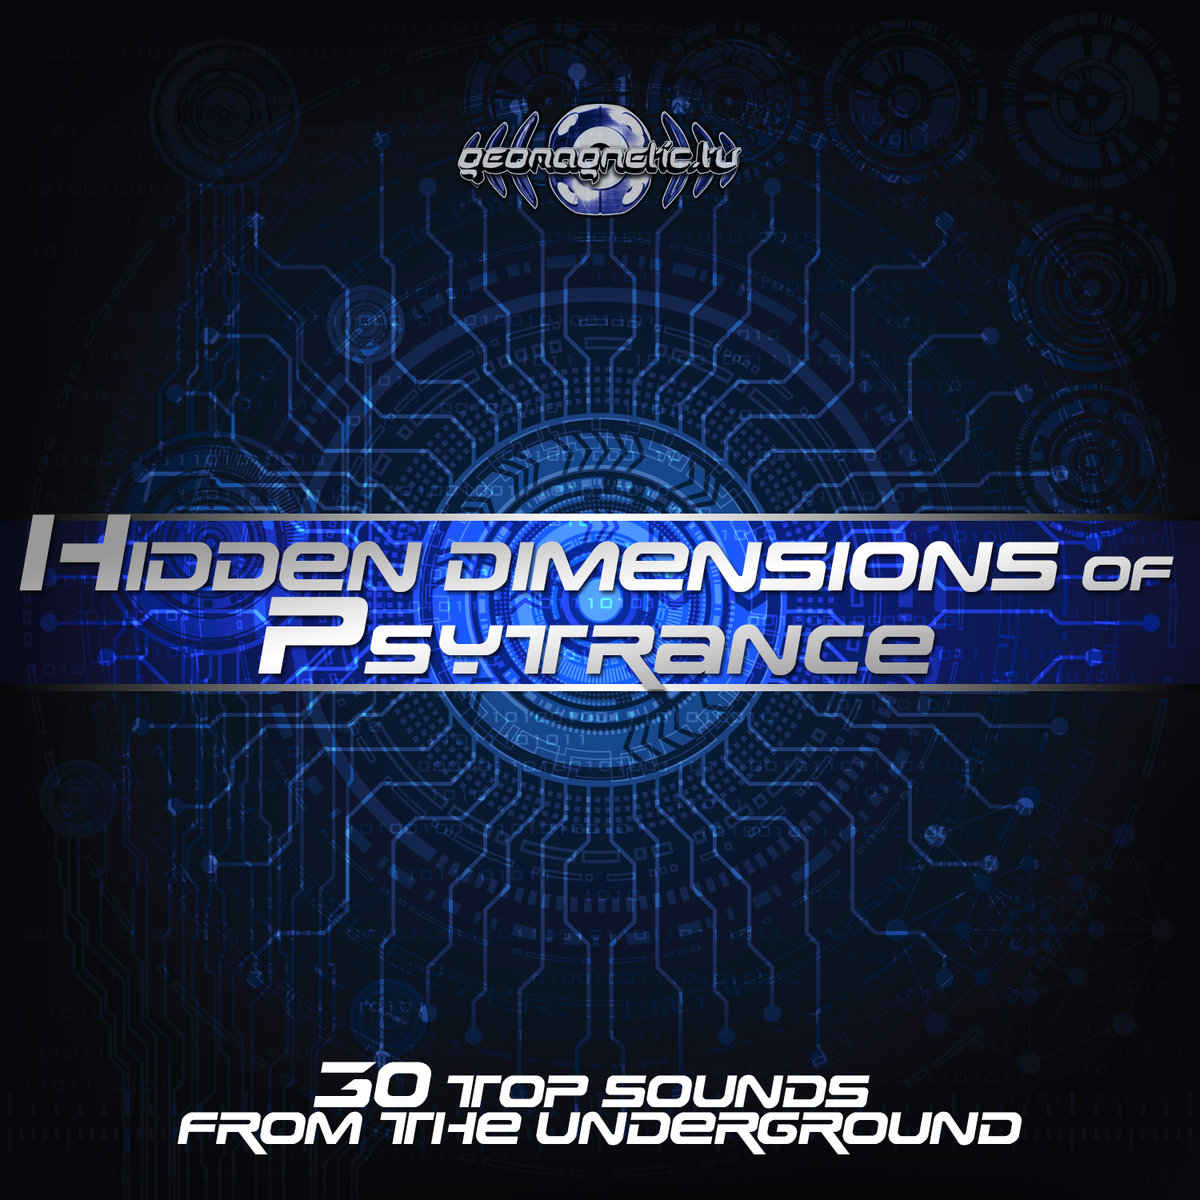 Ancient - The Mind @ 'Various Artists - Hidden Dimensions of Psytrance (30 Top Sounds From The Underground)' album (electronic, goa)